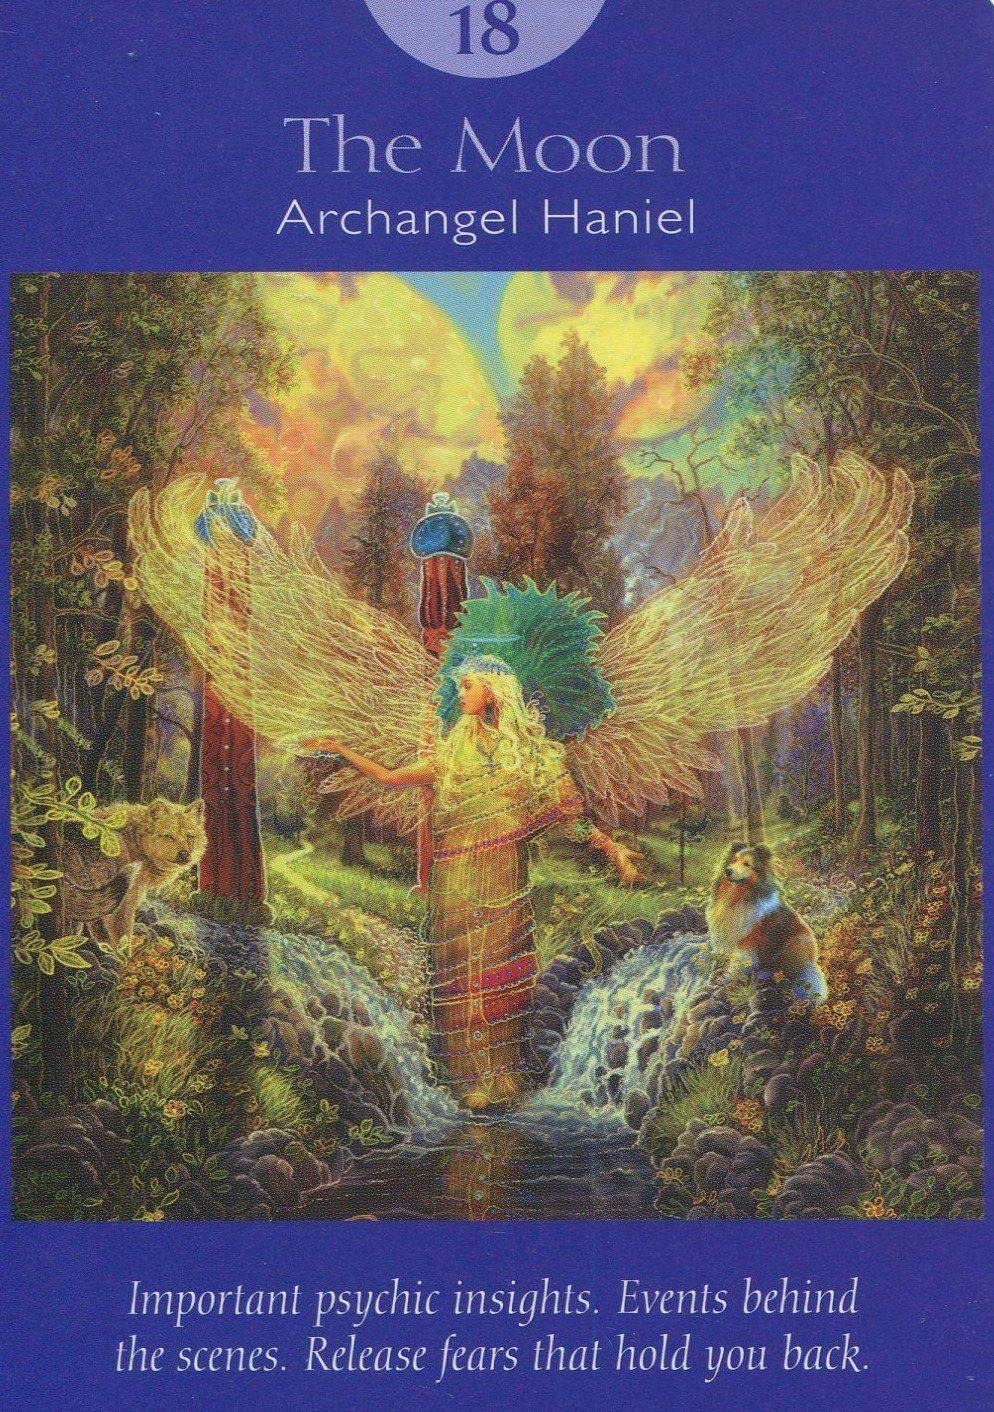 The Moon- Archangel Haniel, Deck: Angel Tarot Cards